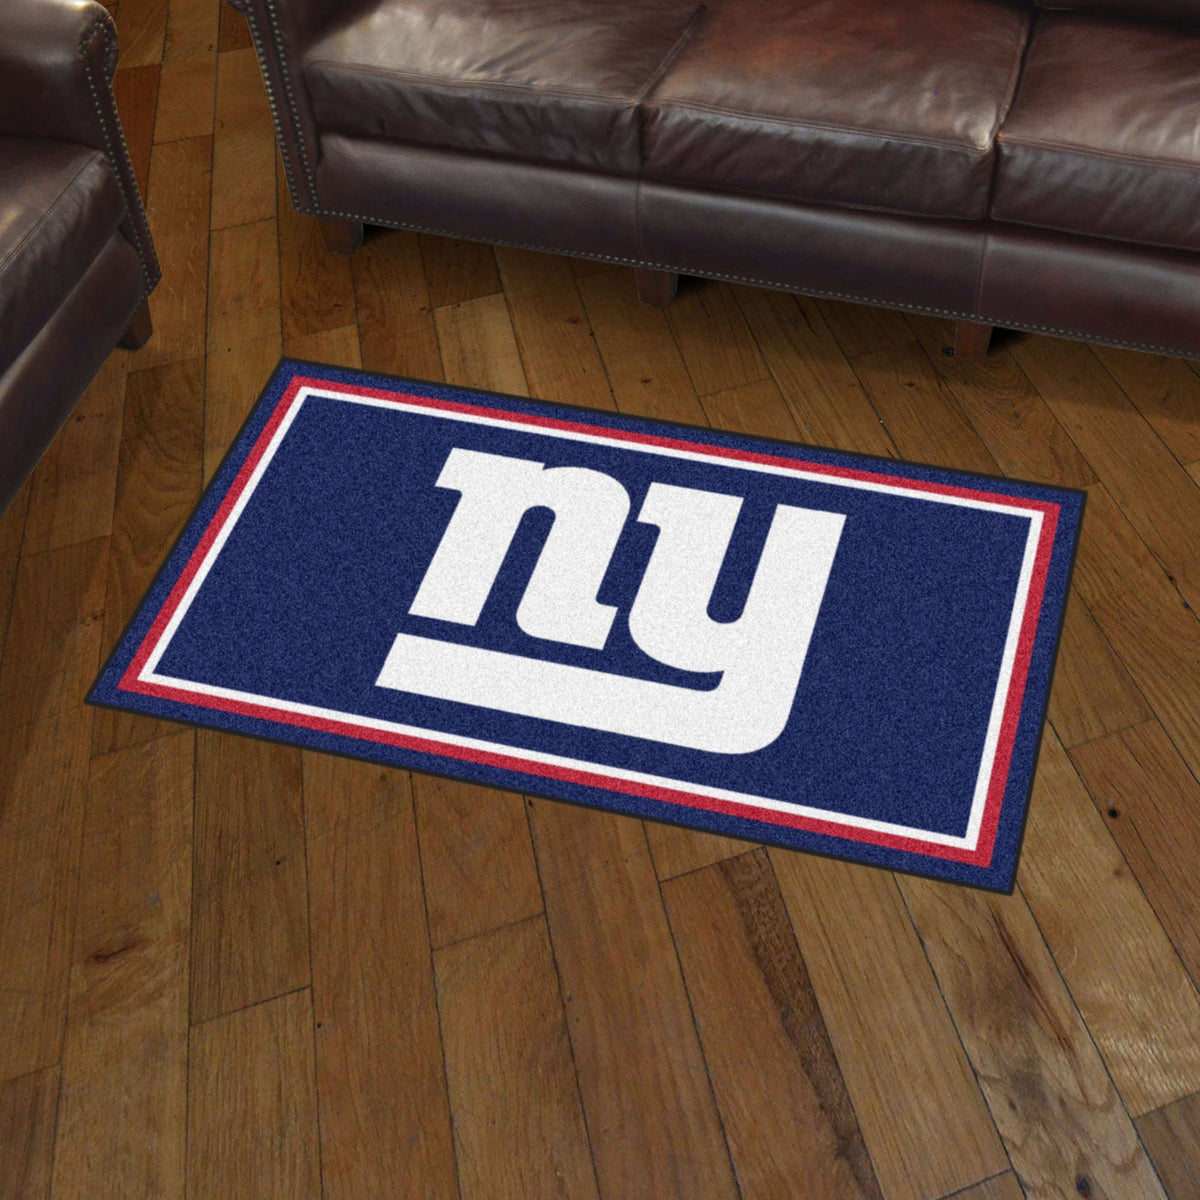 NFL - 3' x 5' Rug NFL Mats, Plush Rugs, 3x5 Rug, NFL, Home Fan Mats New York Giants